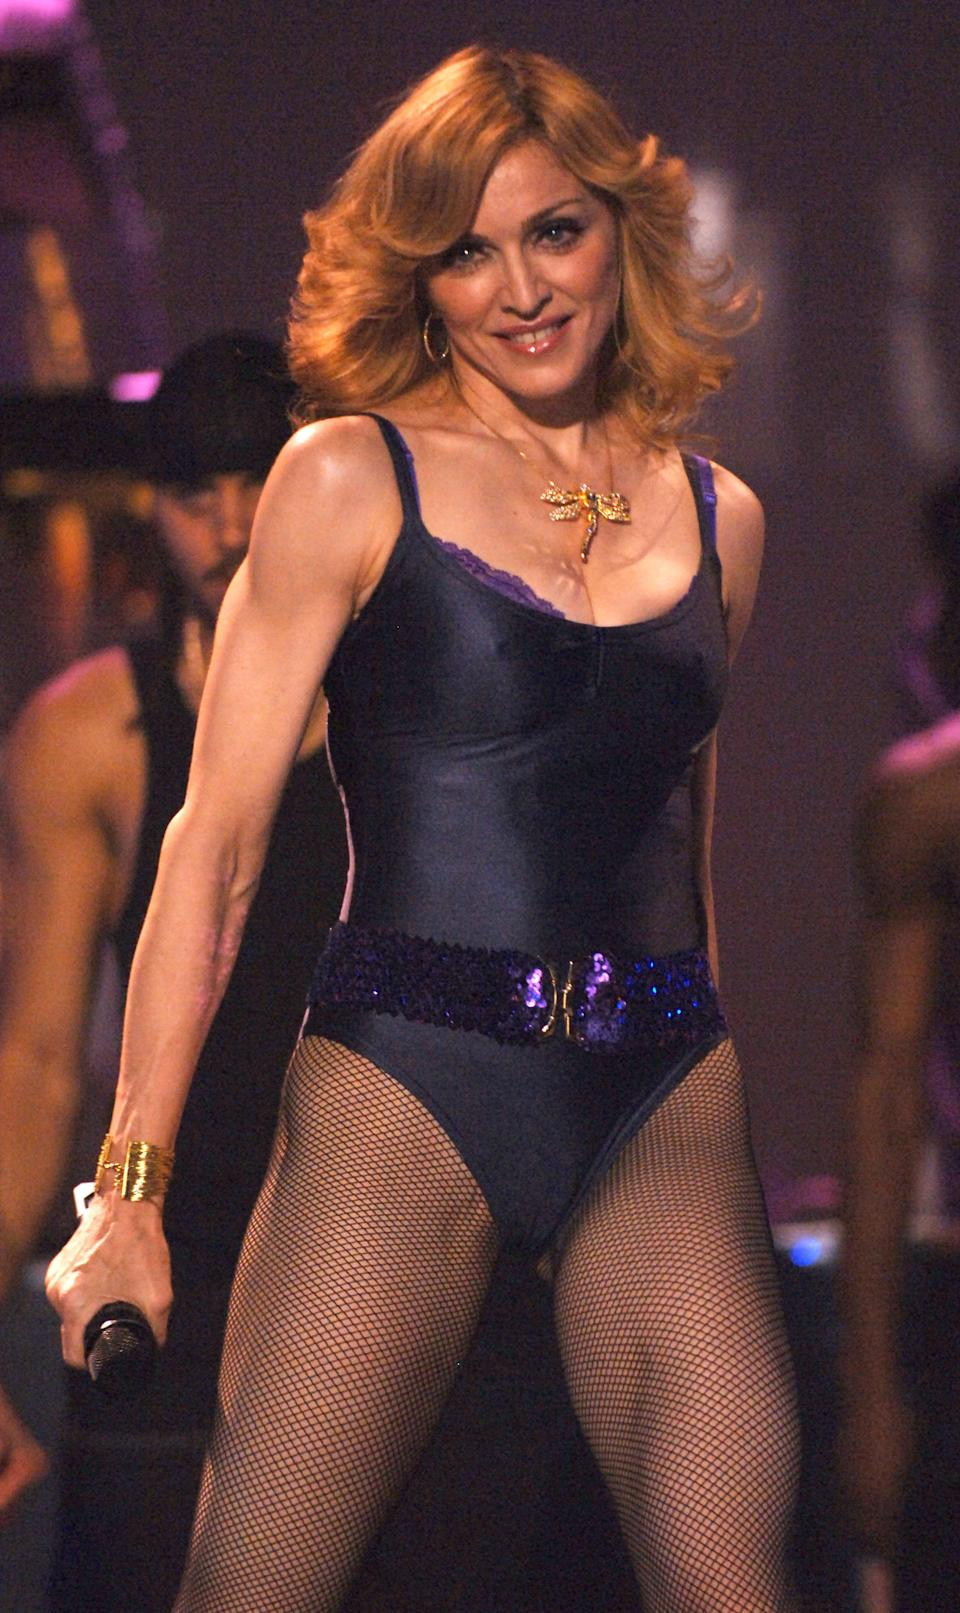 The age-shamers were out in force when Madonna dared to don a leotard aged 47 [Photo: Getty]